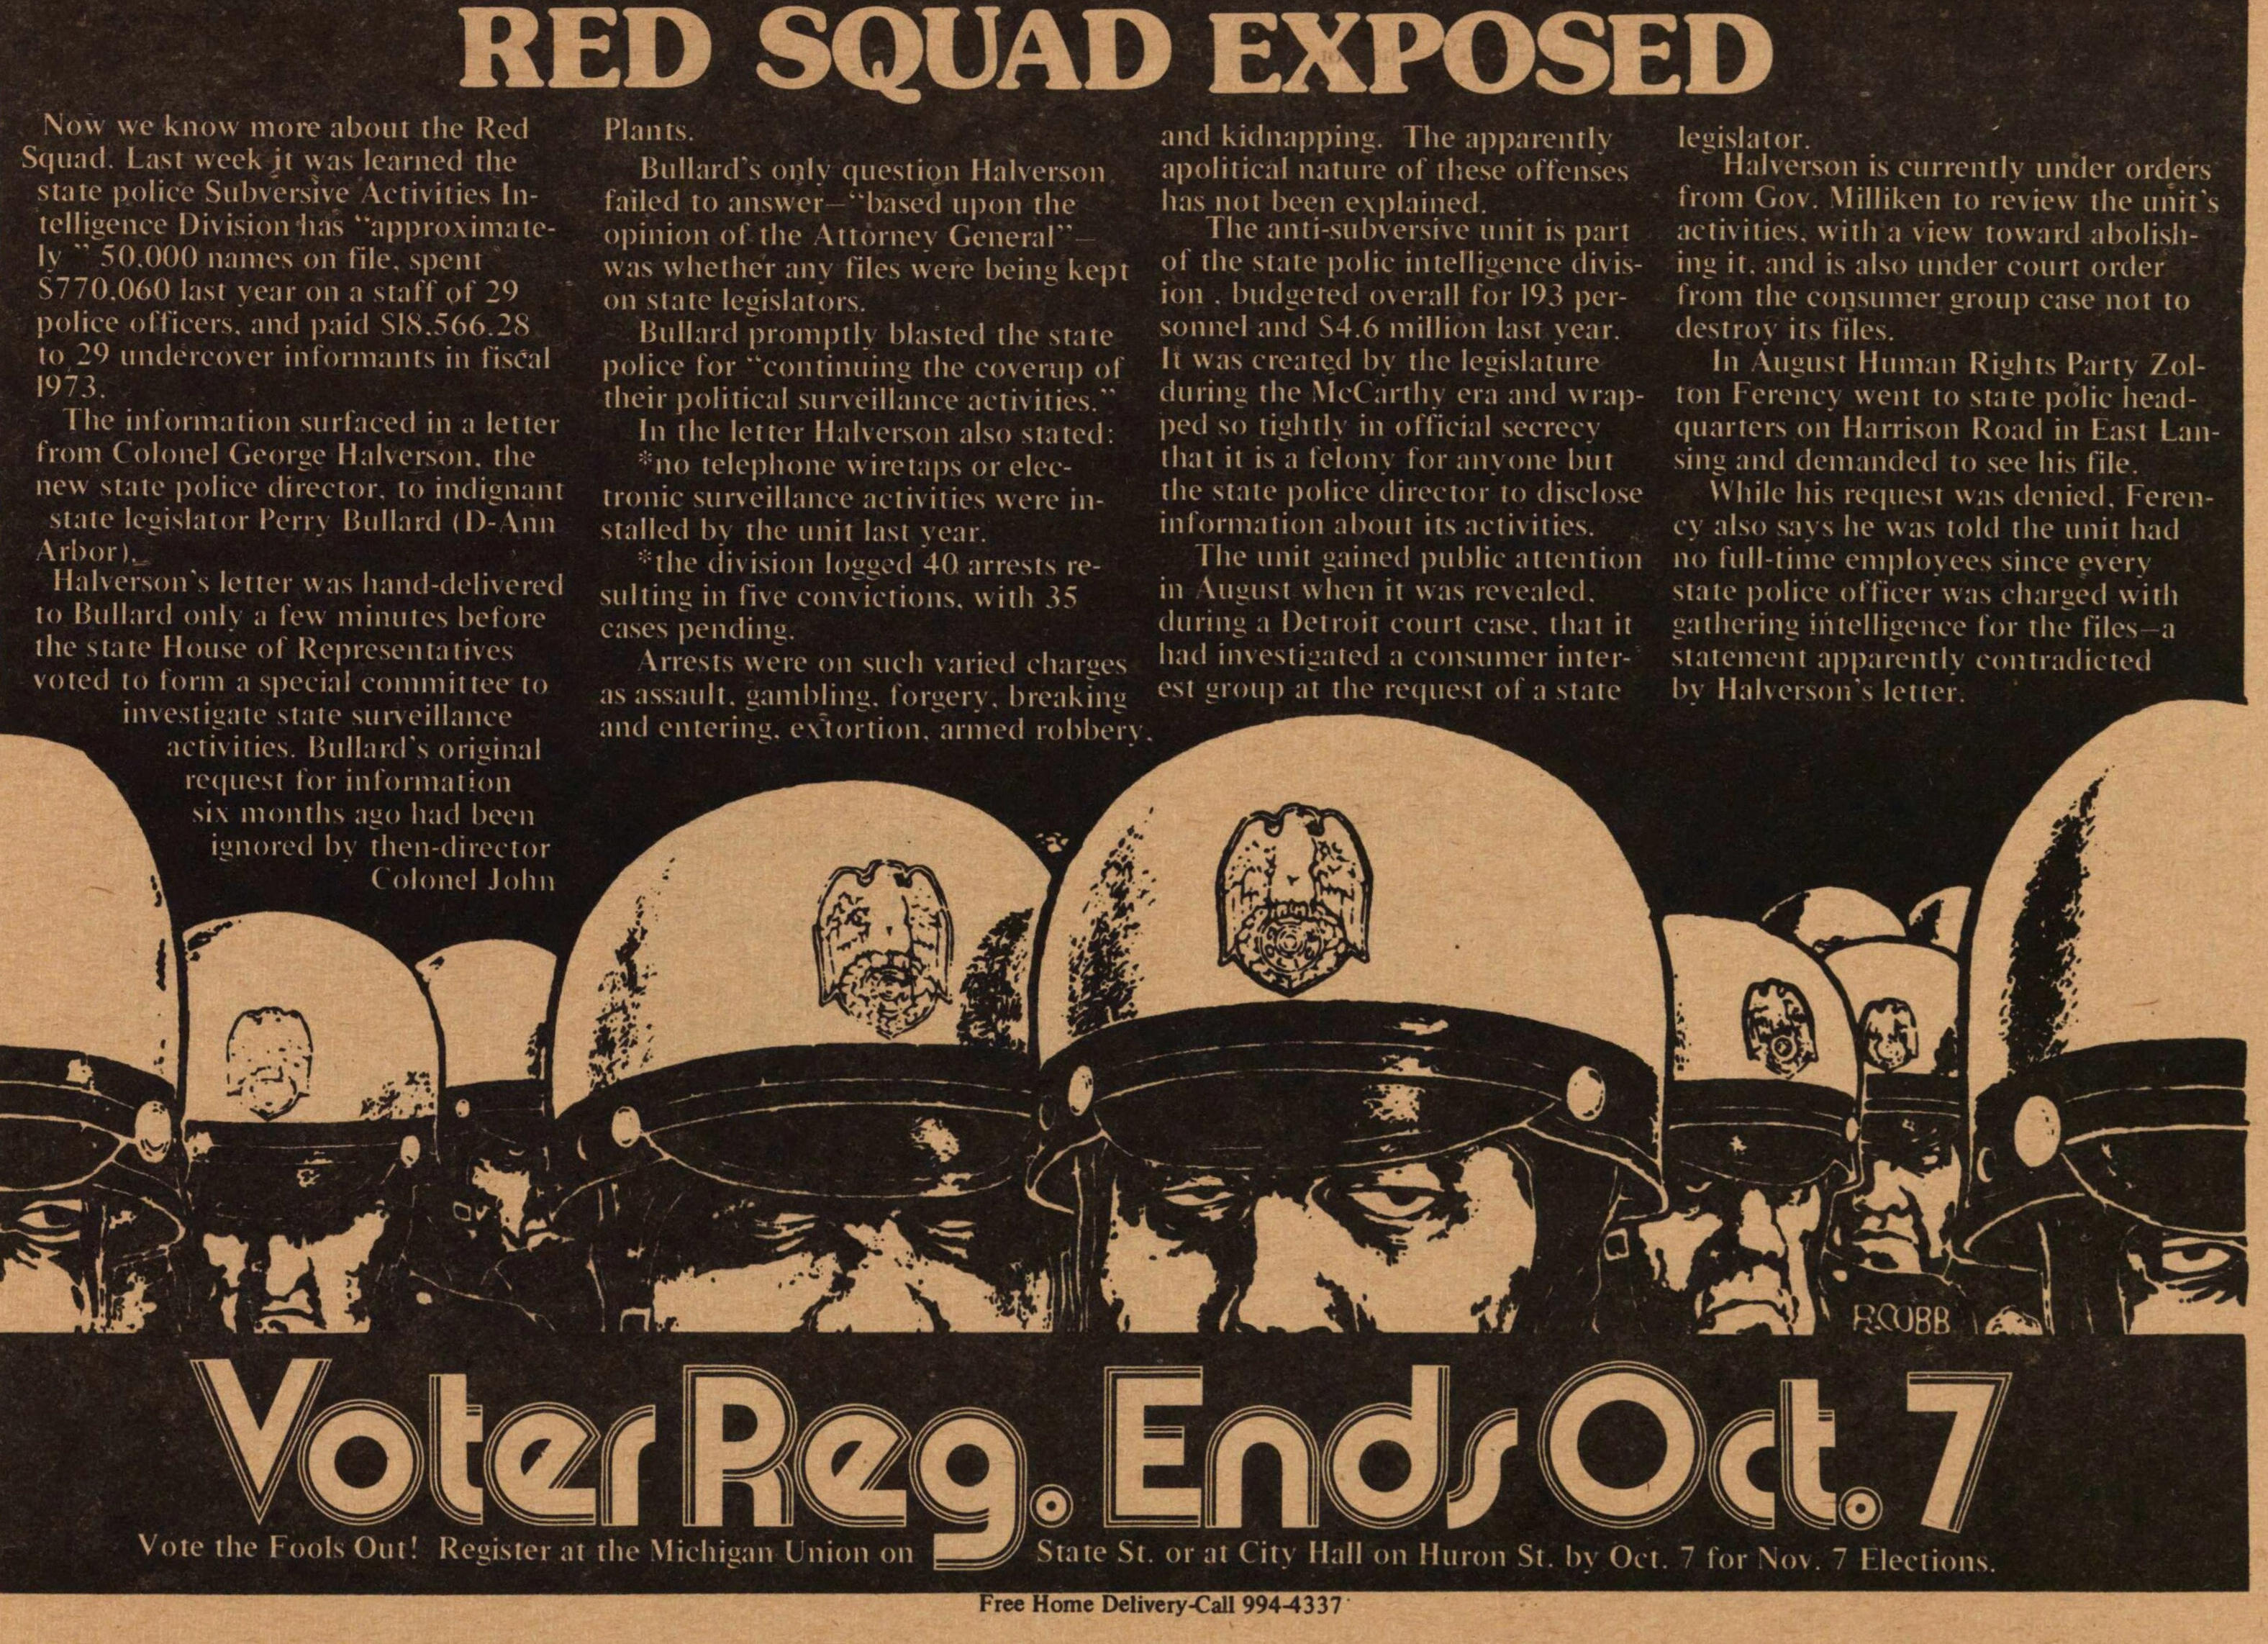 Red Squad Exposed image